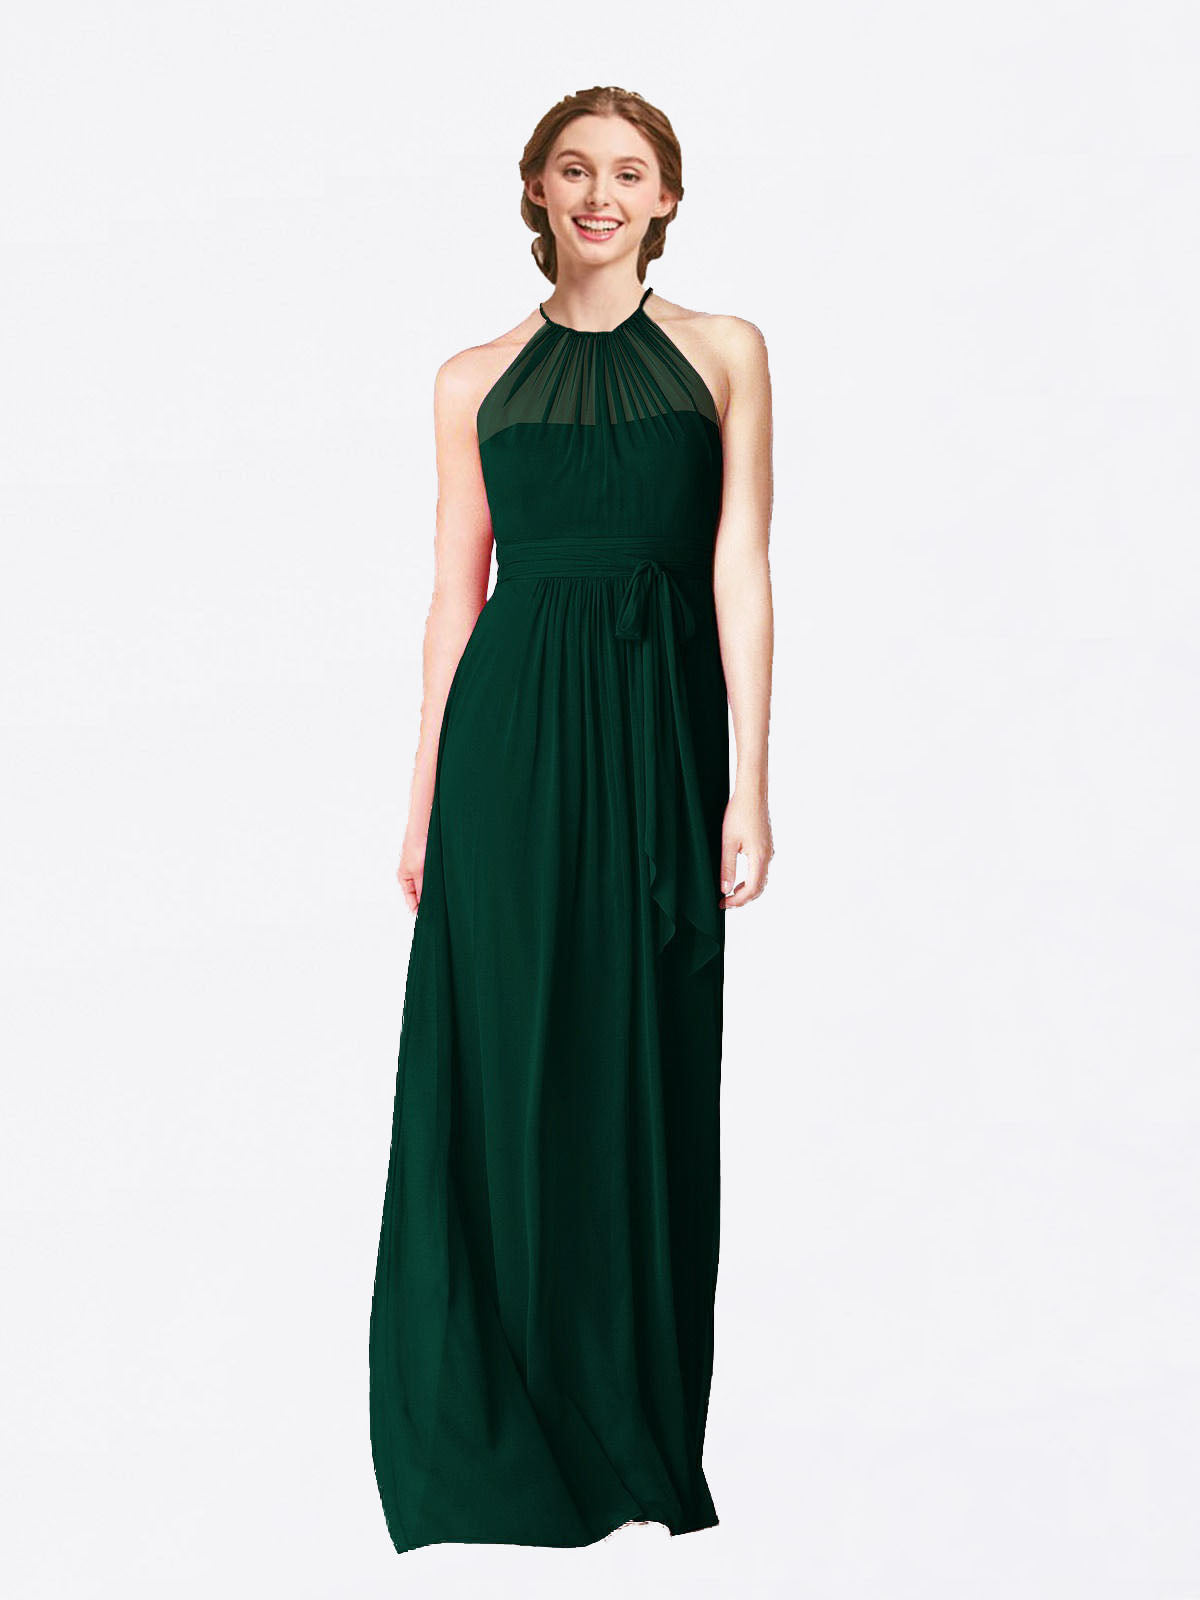 Long A-Line Halter Sleeveless Ever Green Chiffon Bridesmaid Dress Laura